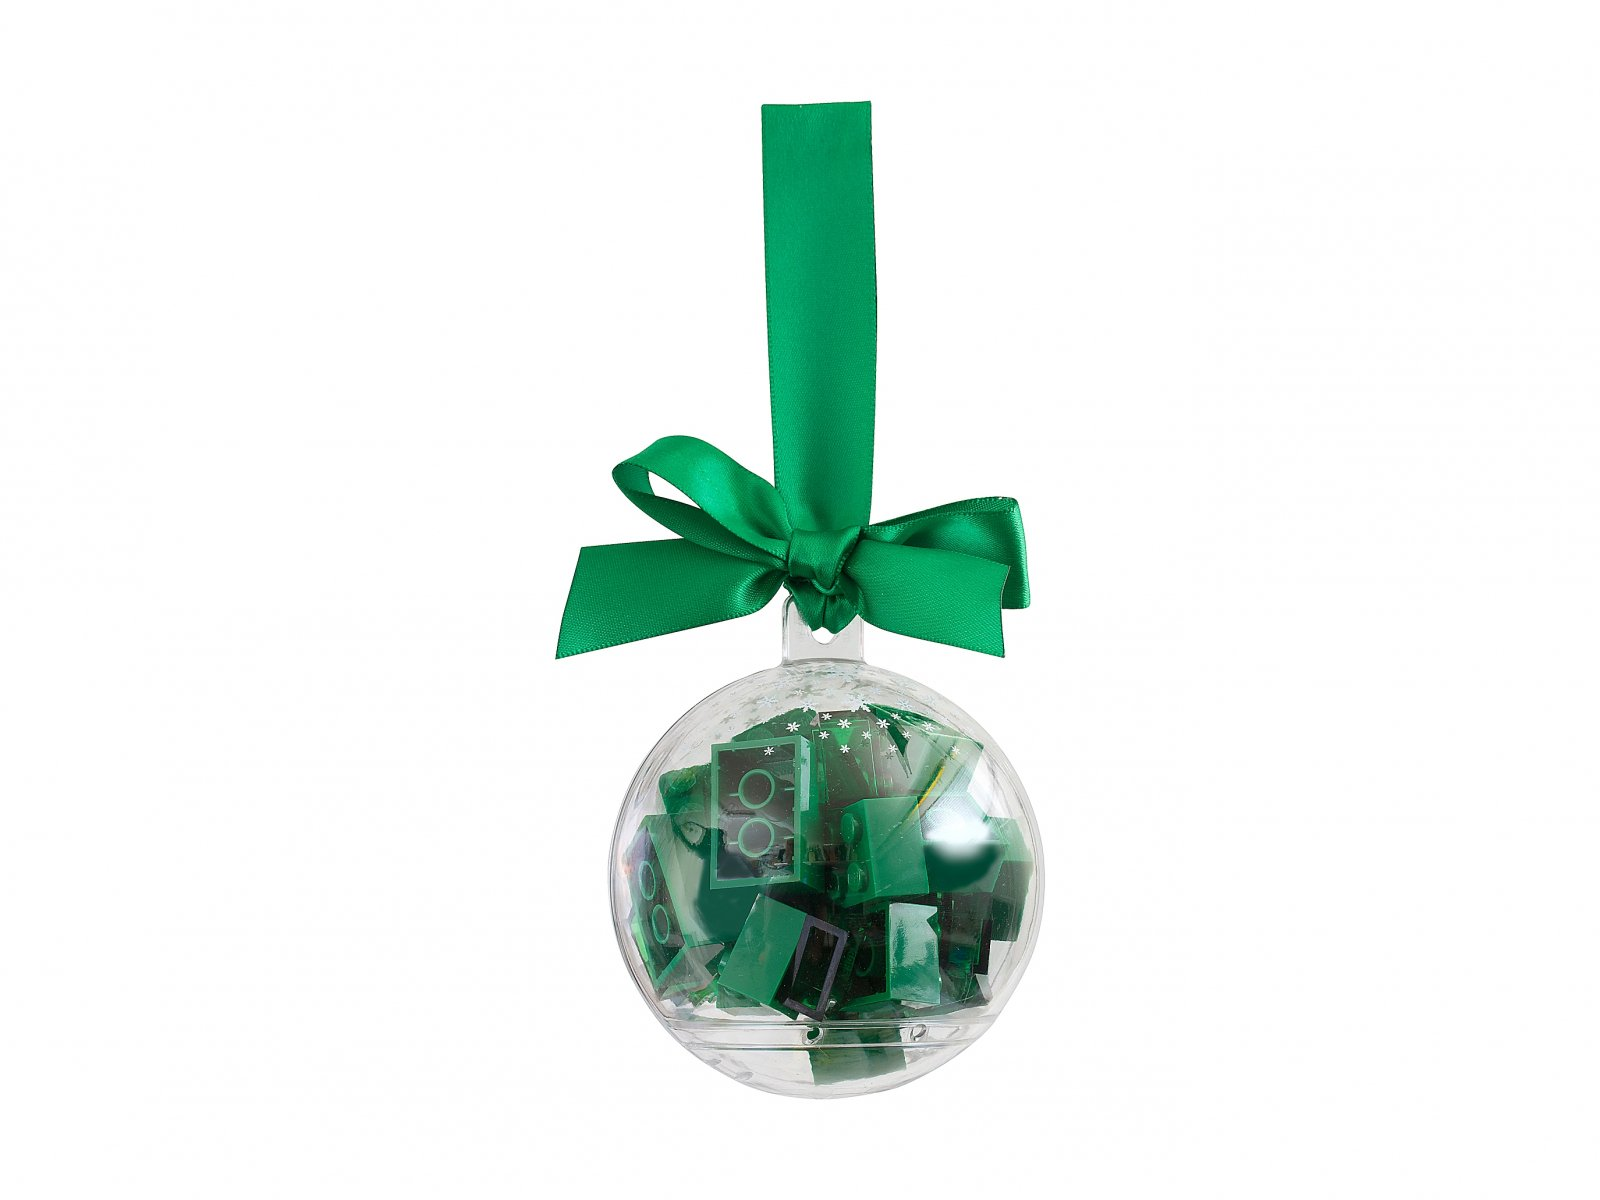 LEGO 853346 Holiday Bauble with Green Bricks